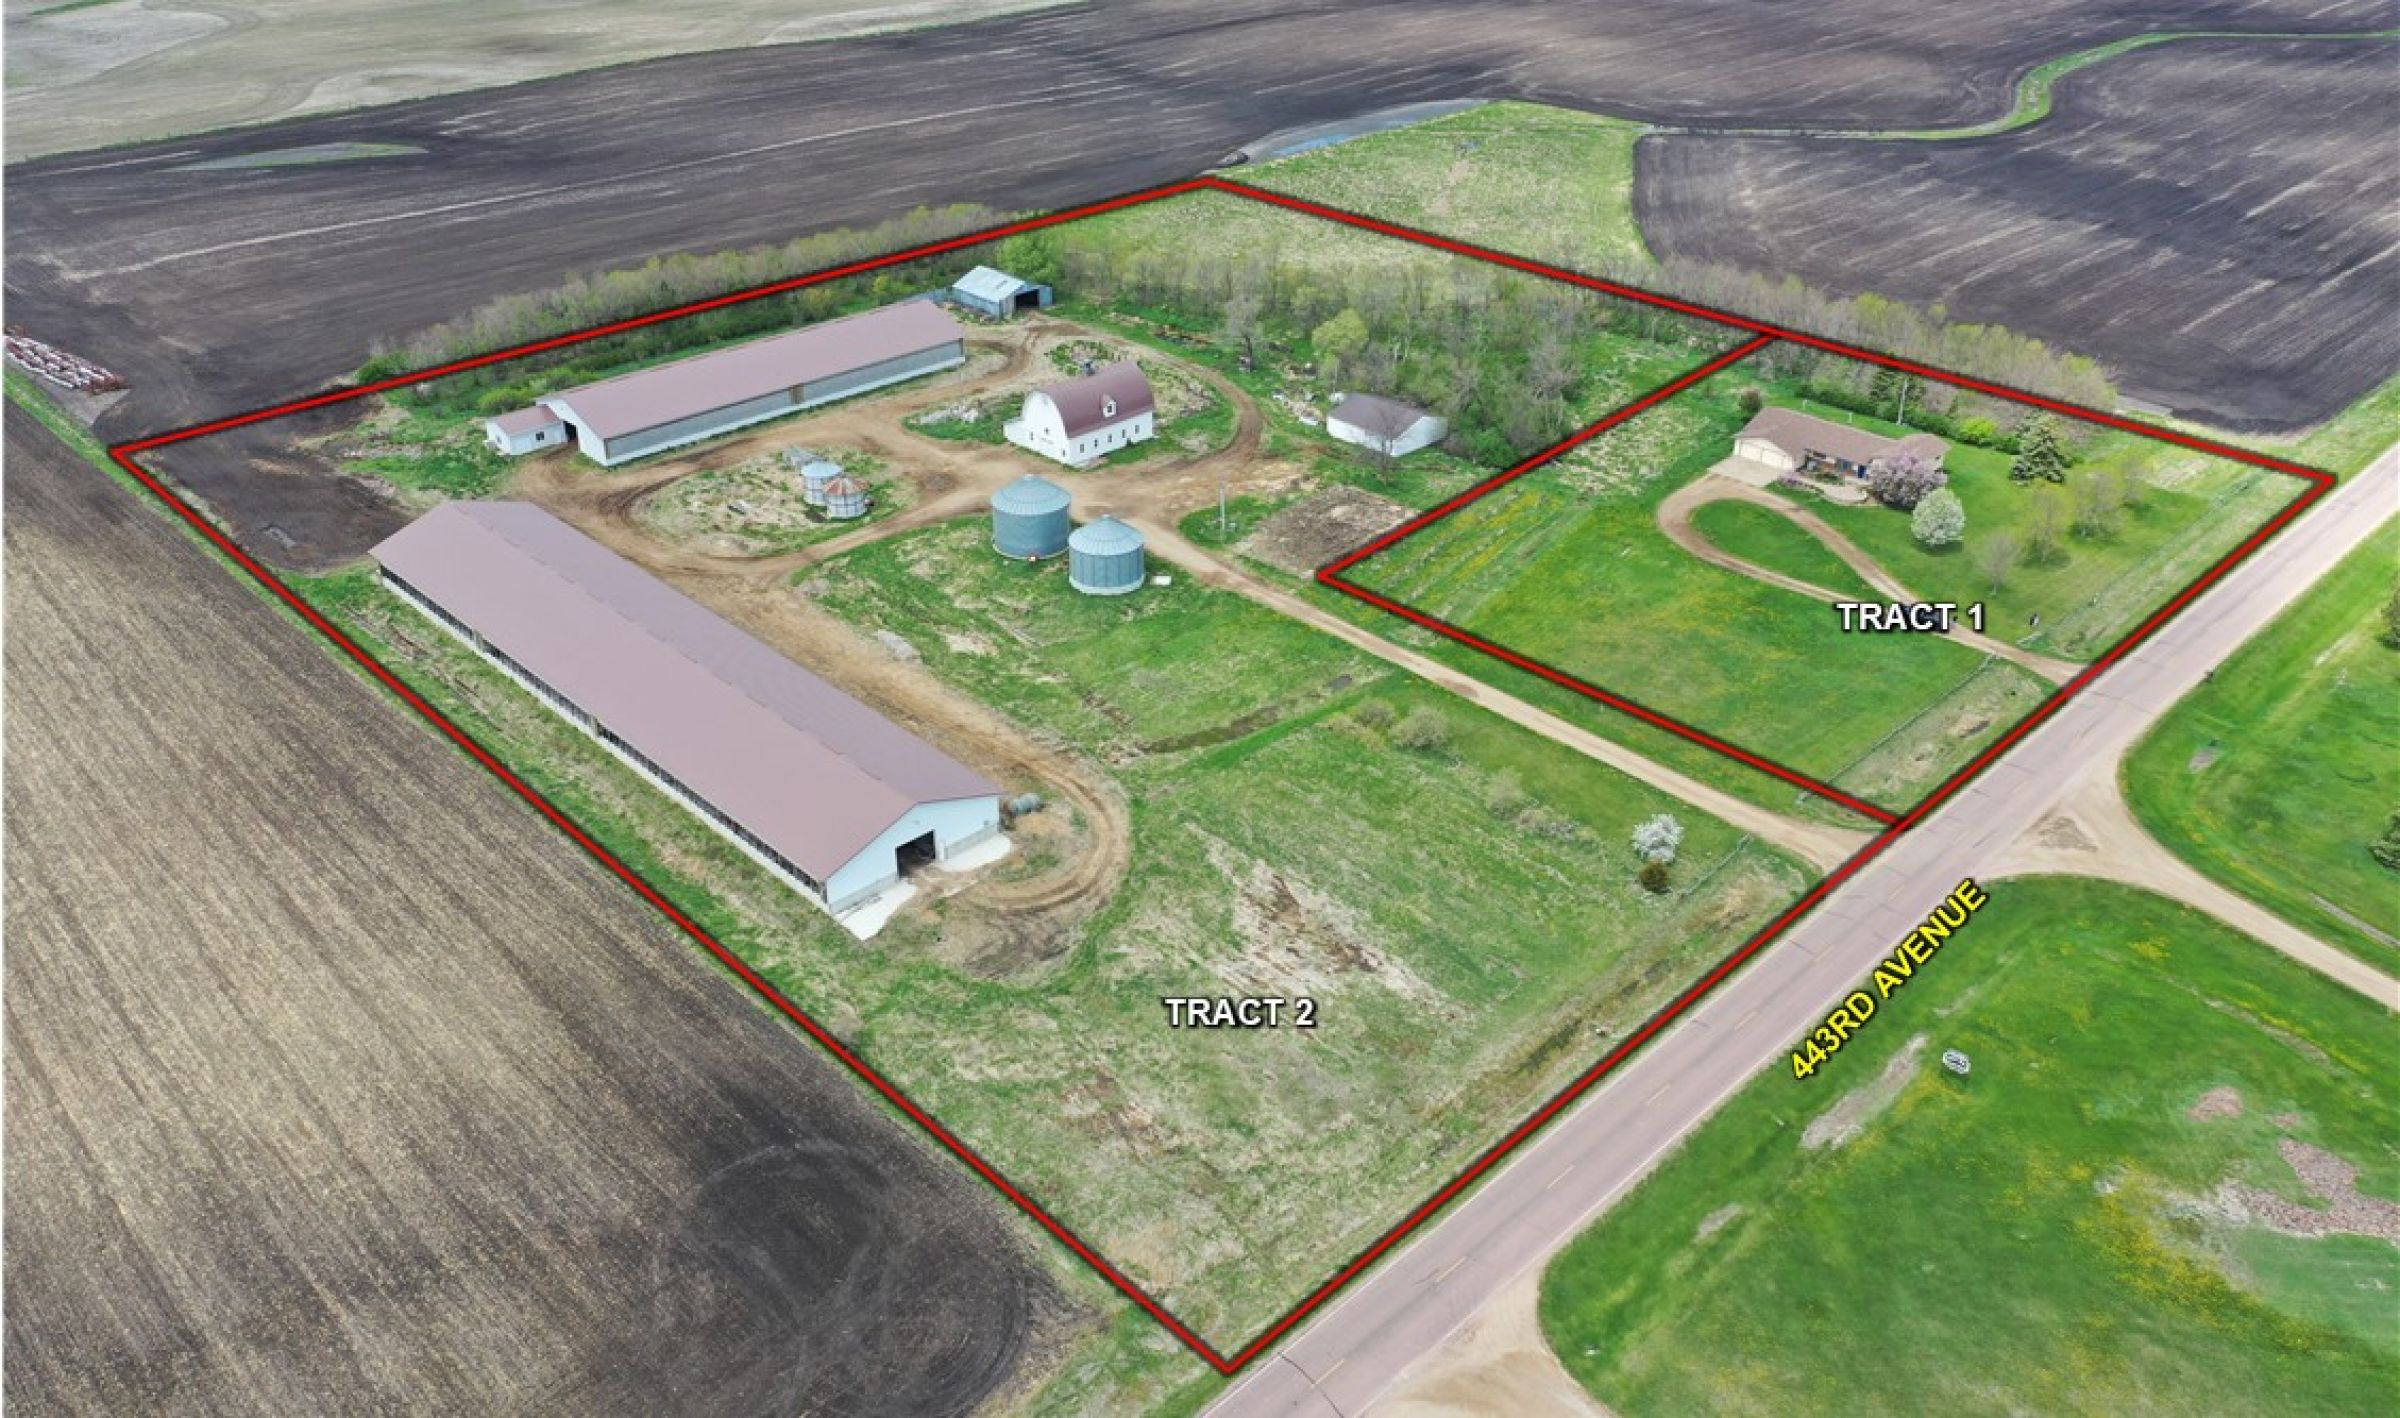 residential-auctions-land-turner-county-south-dakota-12-acres-listing-number-14971-0-2020-05-08-154910.jpg